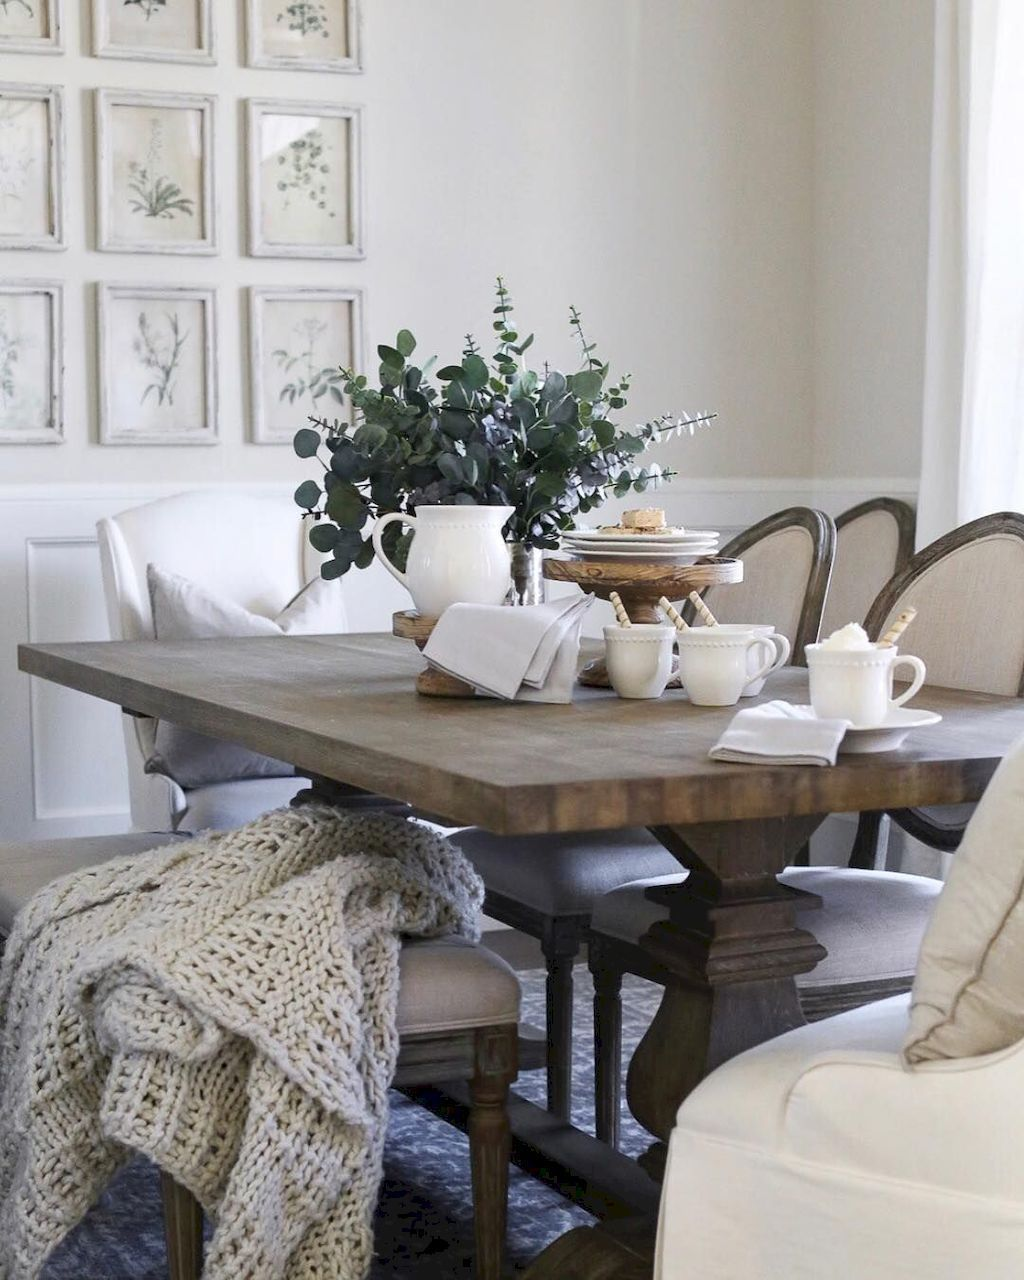 15 Dining Room Decorating Ideas: 15 Lasting Farmhouse Dining Room Makeover Decor Ideas